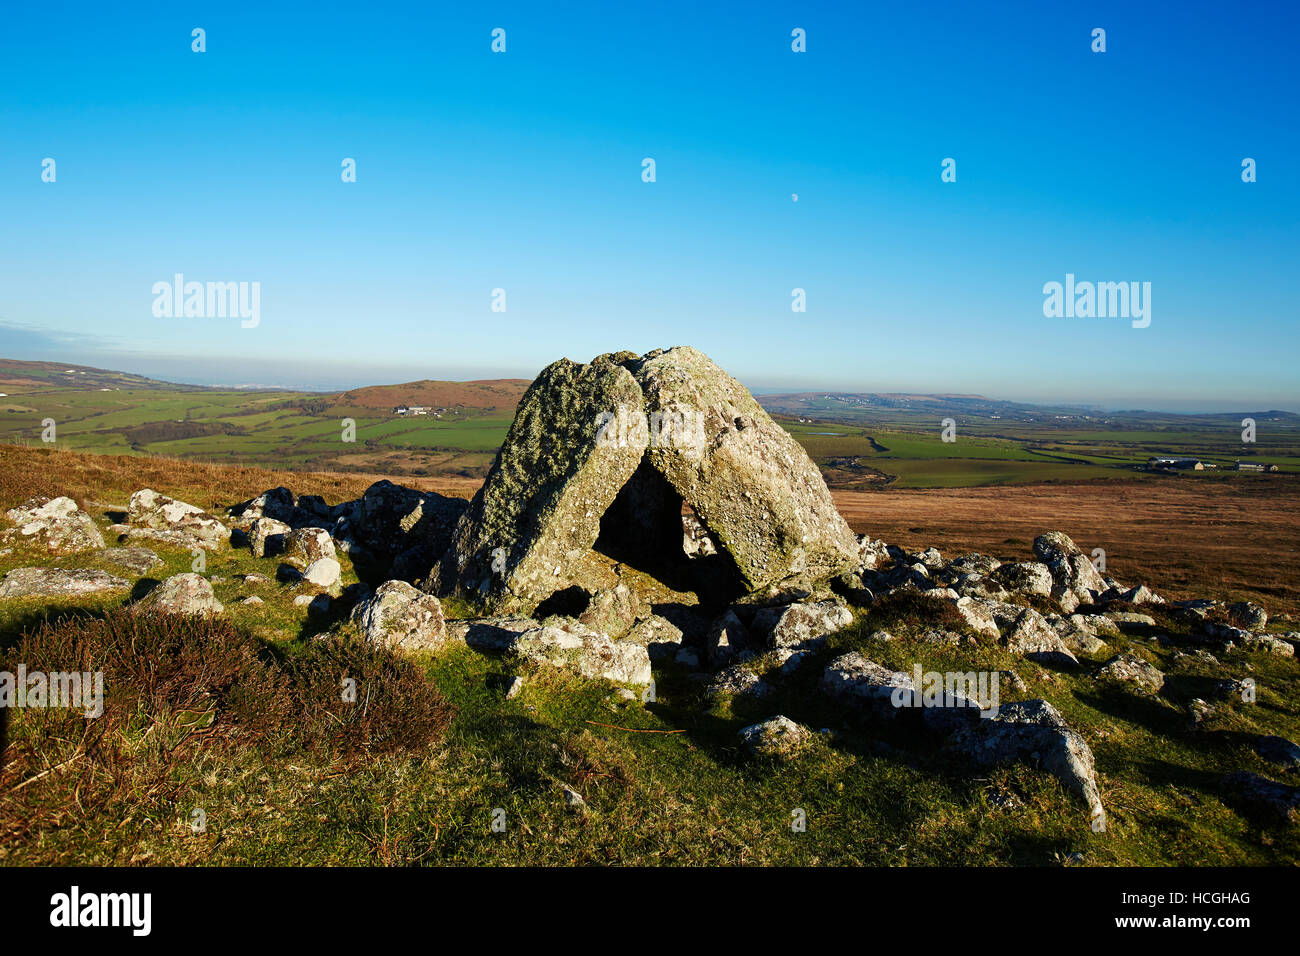 Sweynes Howes, (Neolithic Burial Chamber), Gower, South Wales, UK - Stock Image